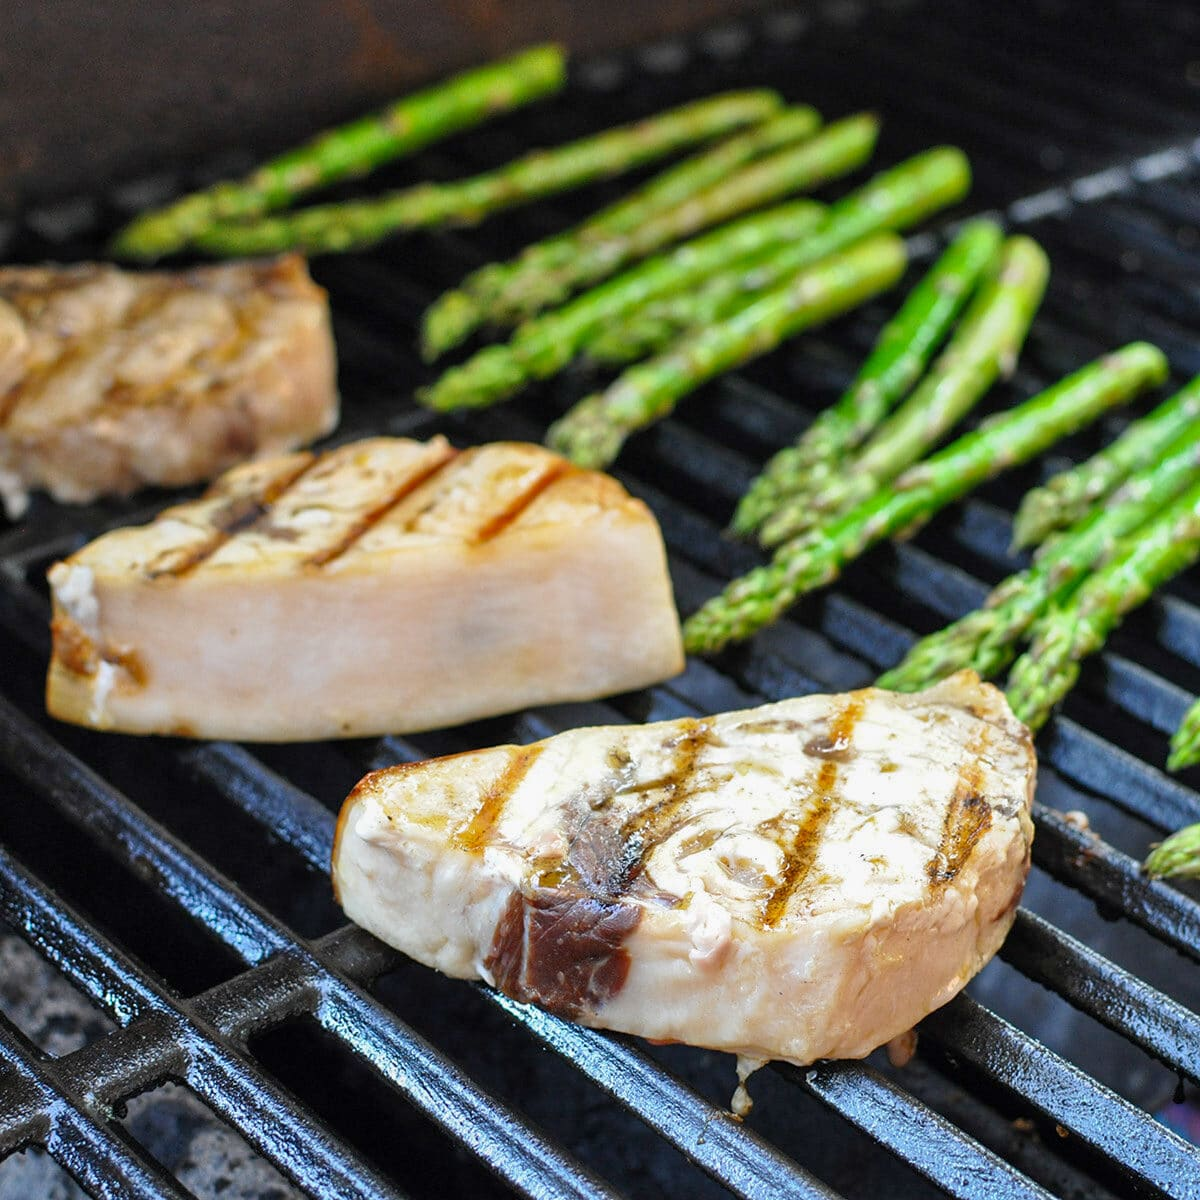 swordfish steaks and asparagus on the grill